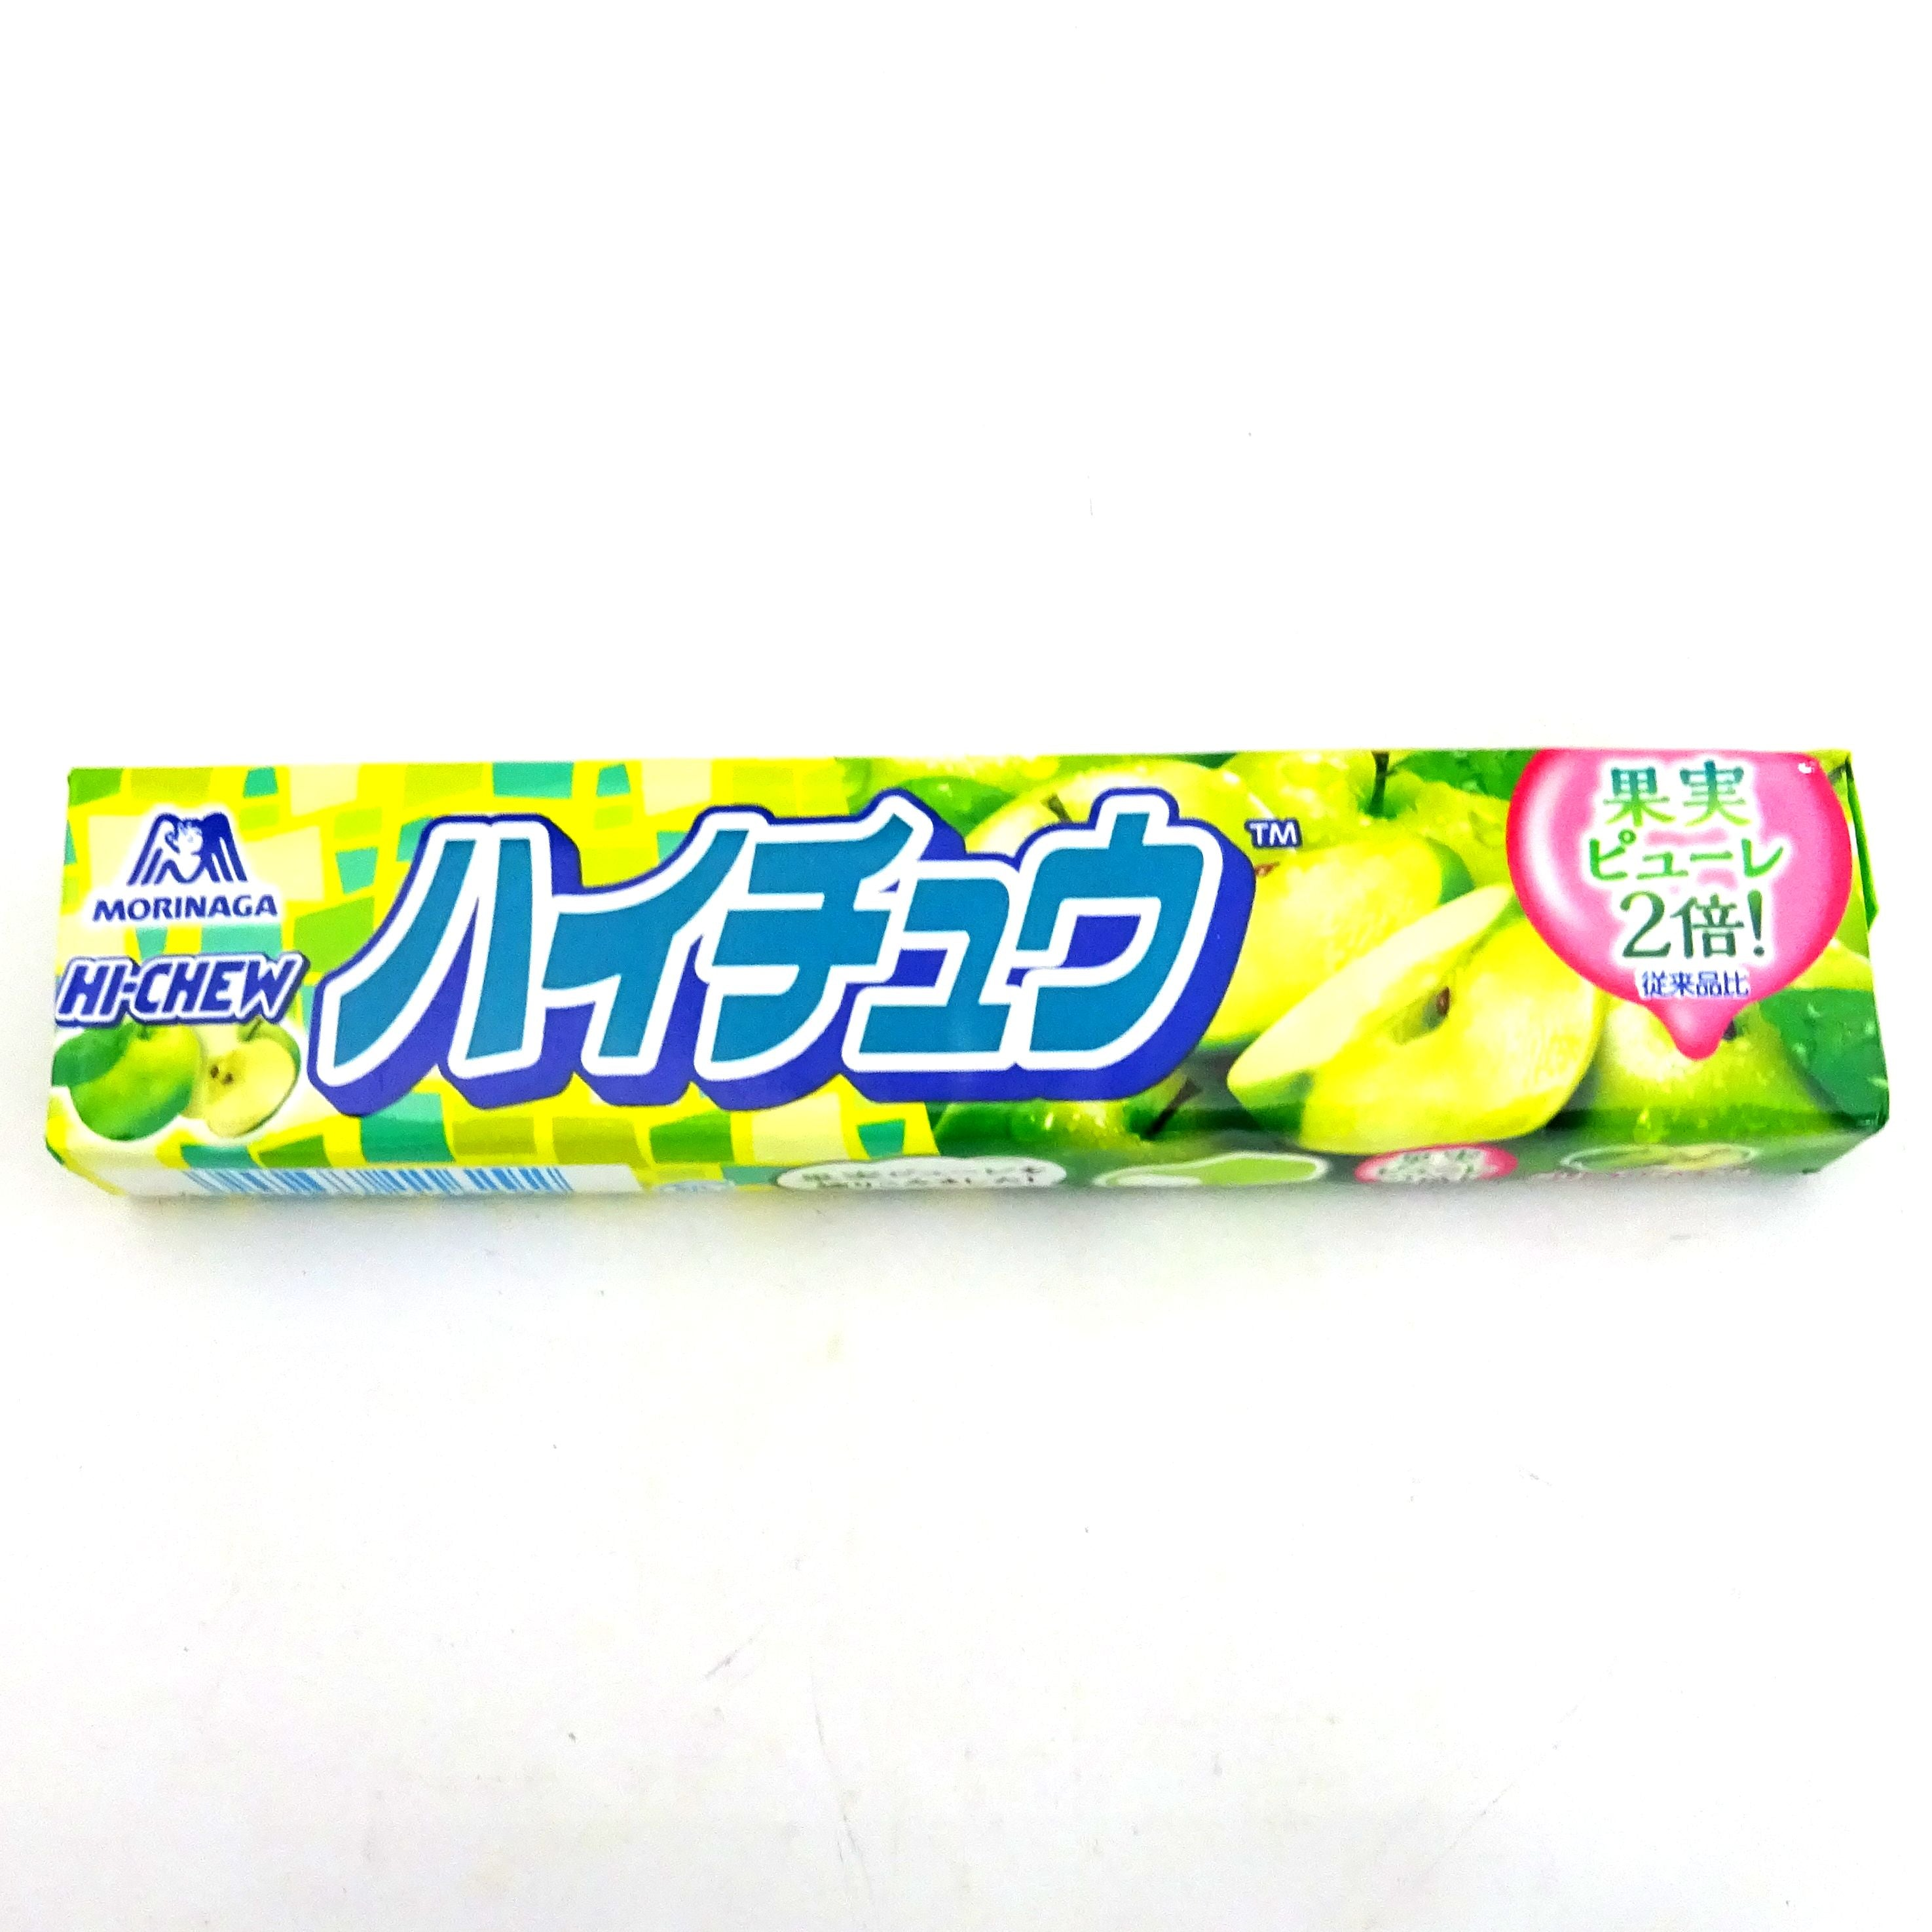 MORINAGA HI-CHEW CANDY GREEN APPLE 57g